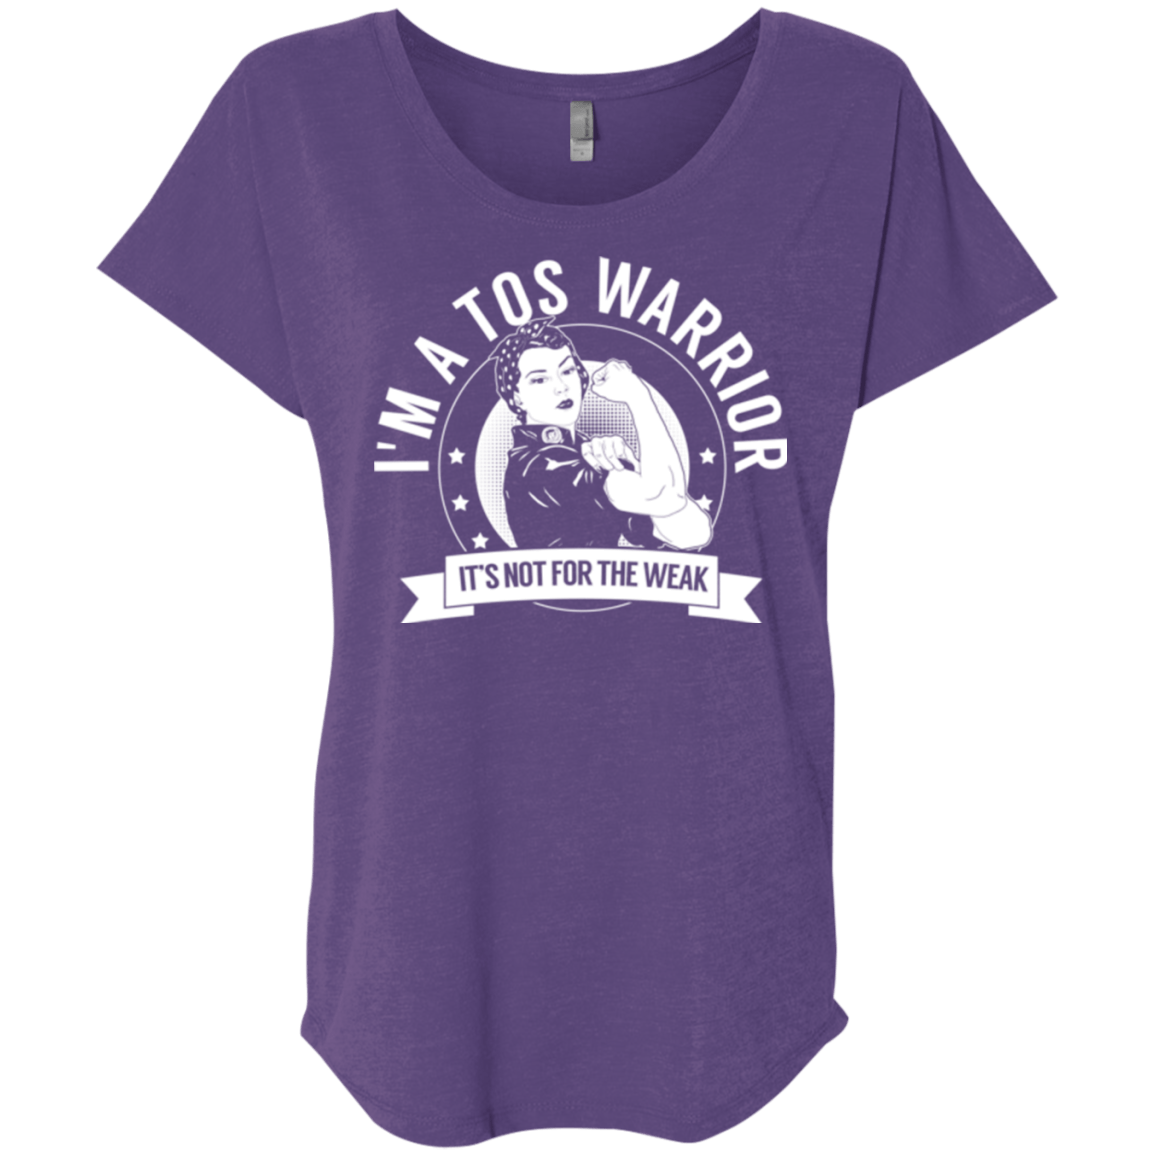 T-Shirts - Thoracic Outlet Syndrome - TOS Warrior Not For The Weak Dolman Sleeve